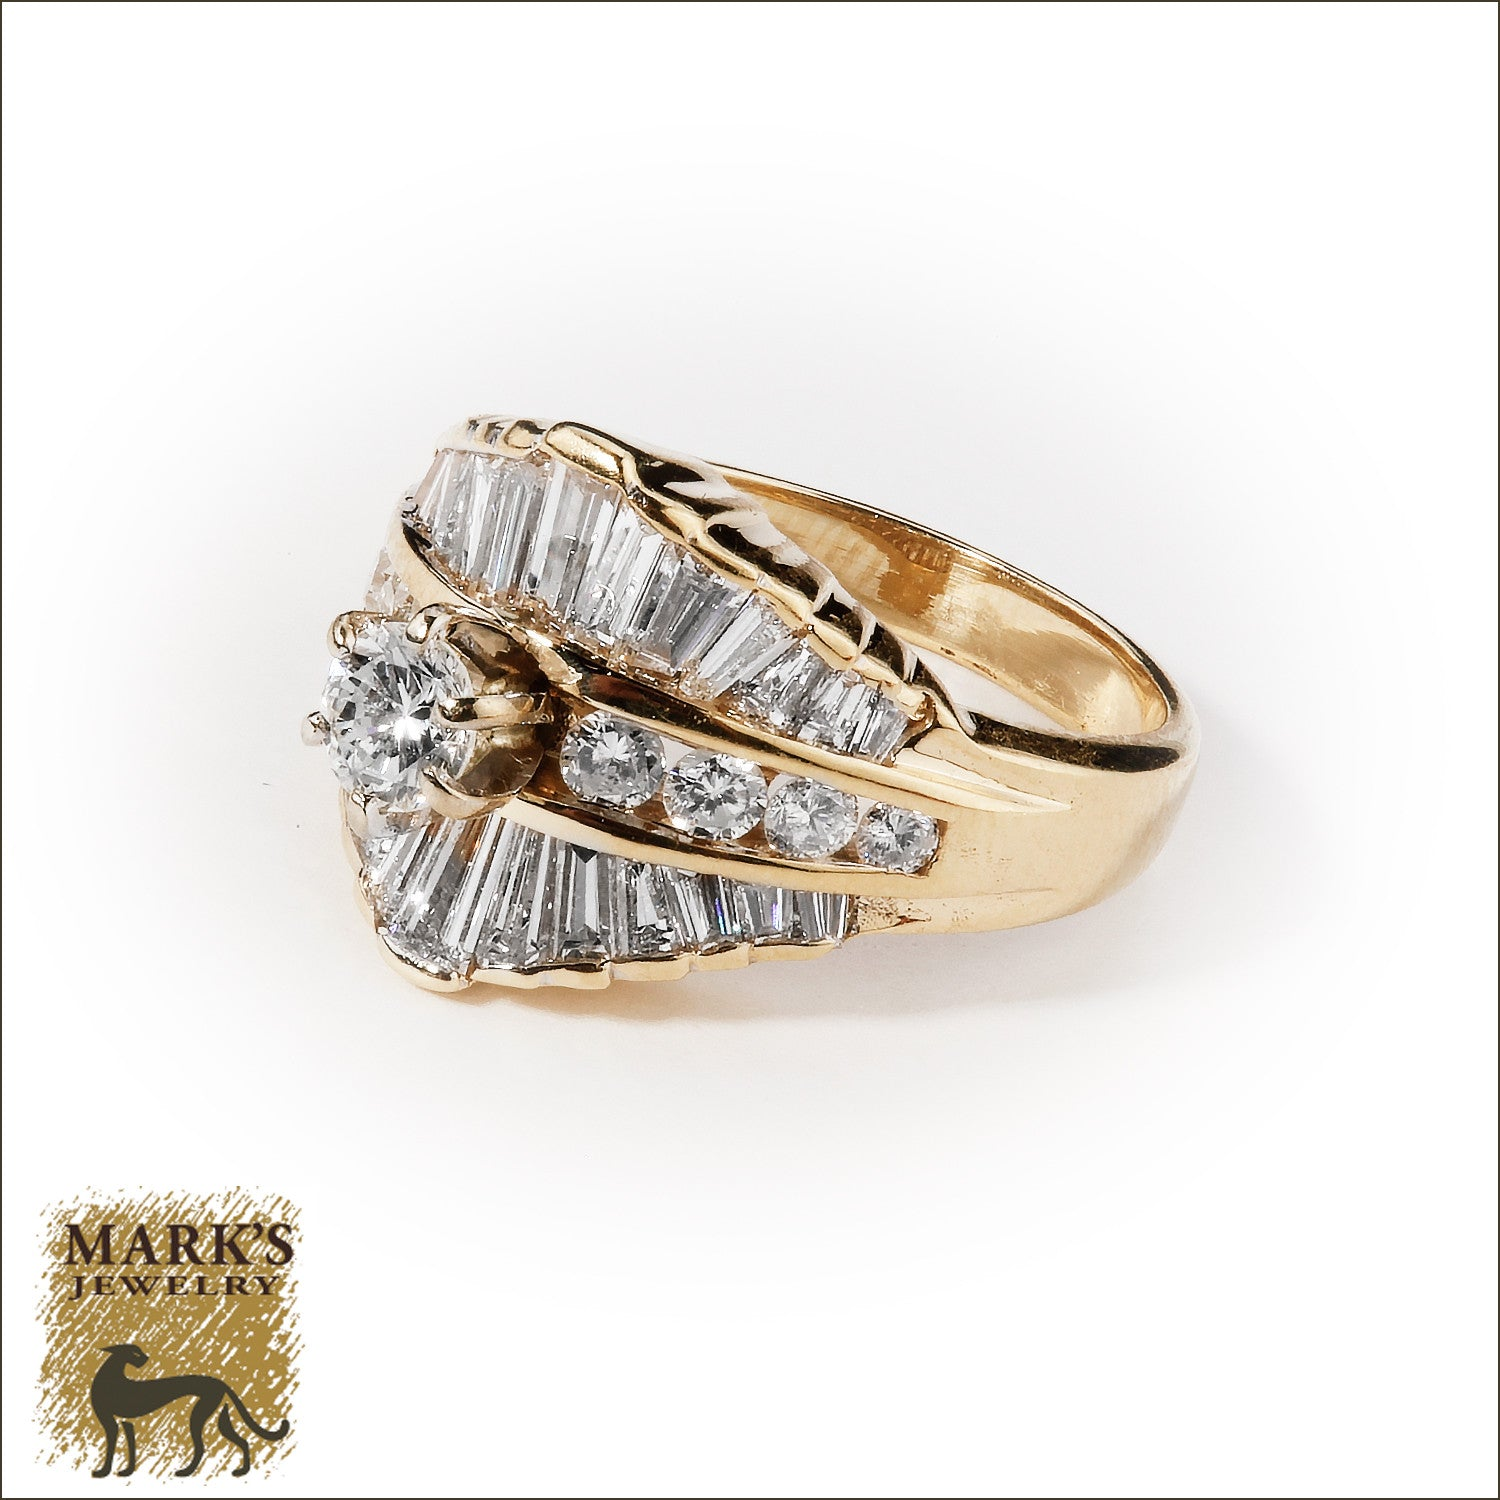 14K Yellow Gold 2 cttw Round Brilliant & Baguette Diamond Ring, Marks Jewelry